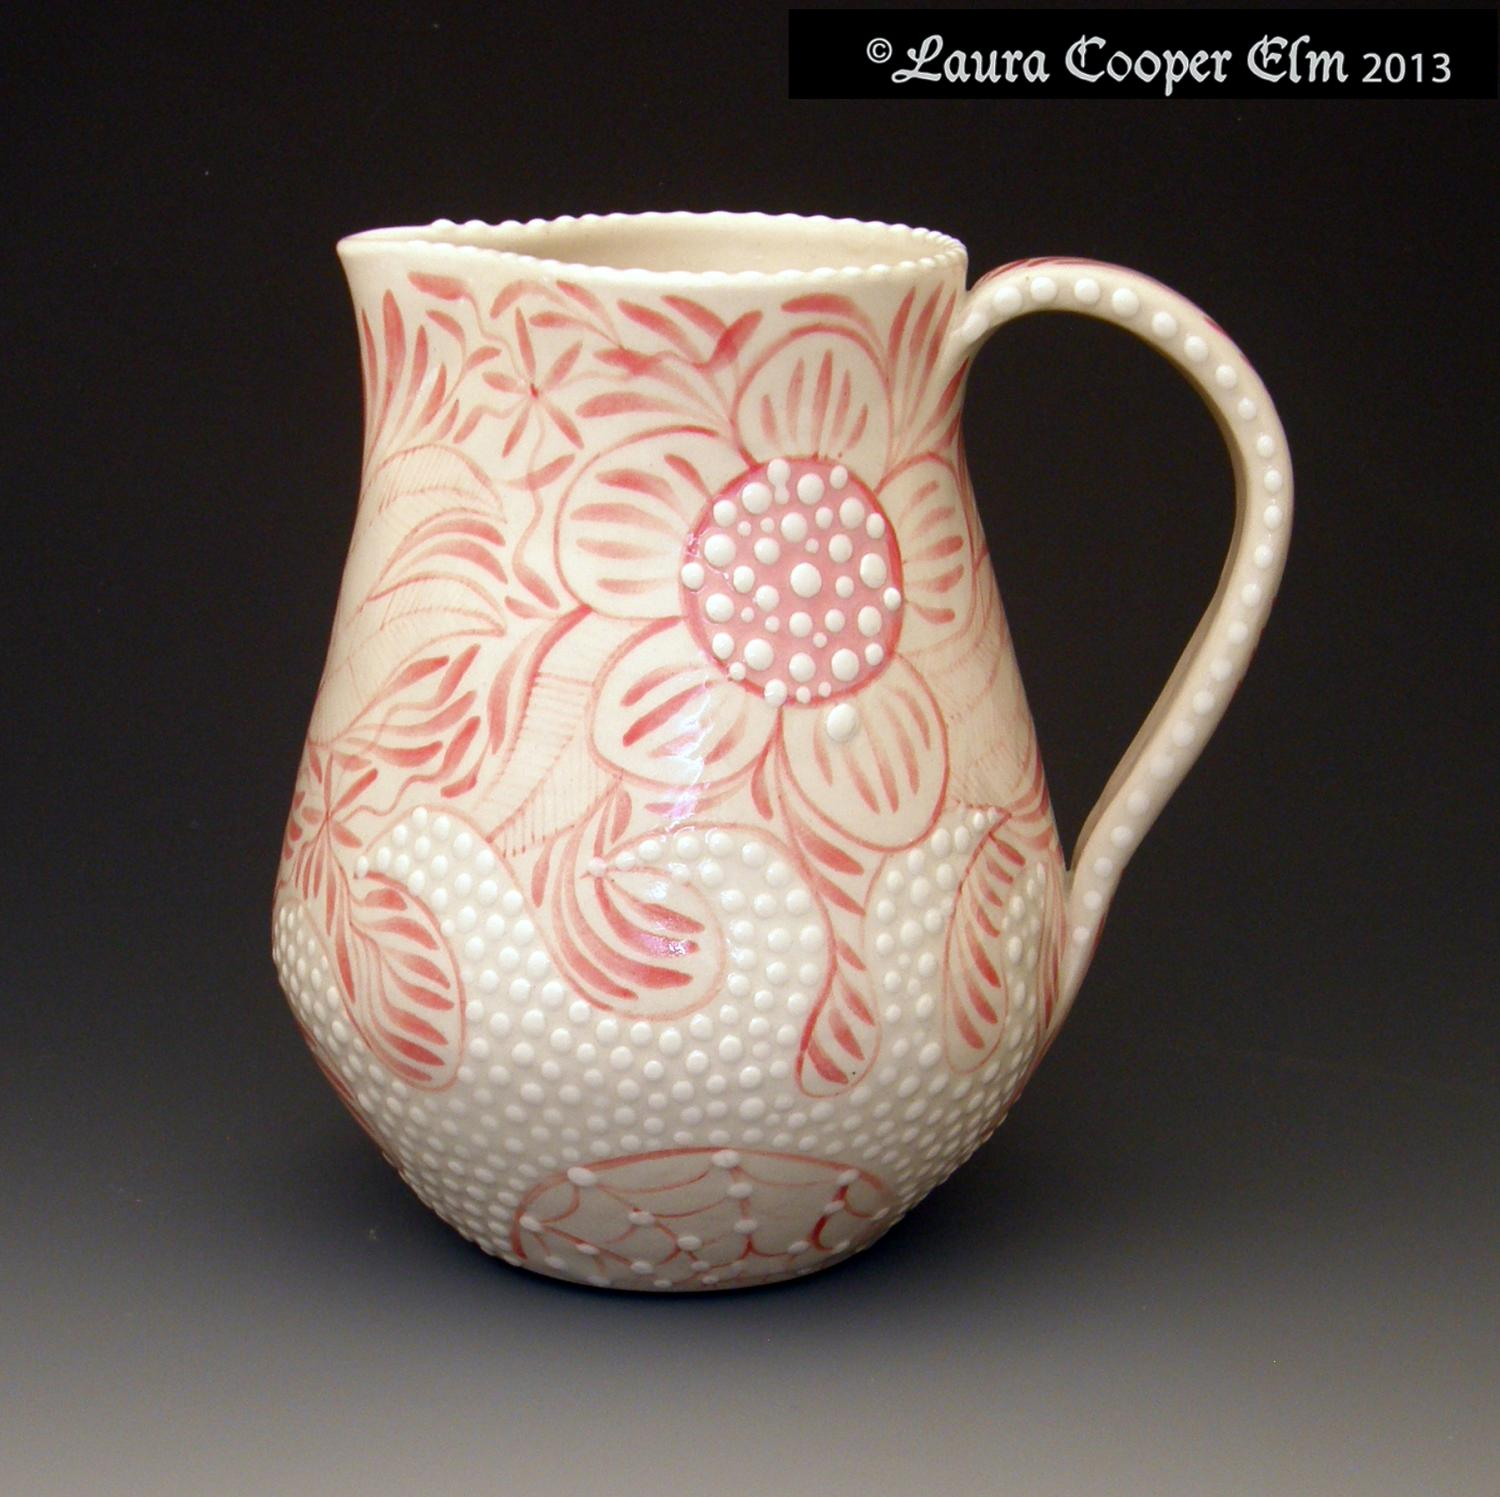 Ceramics by Laura Cooper Elm